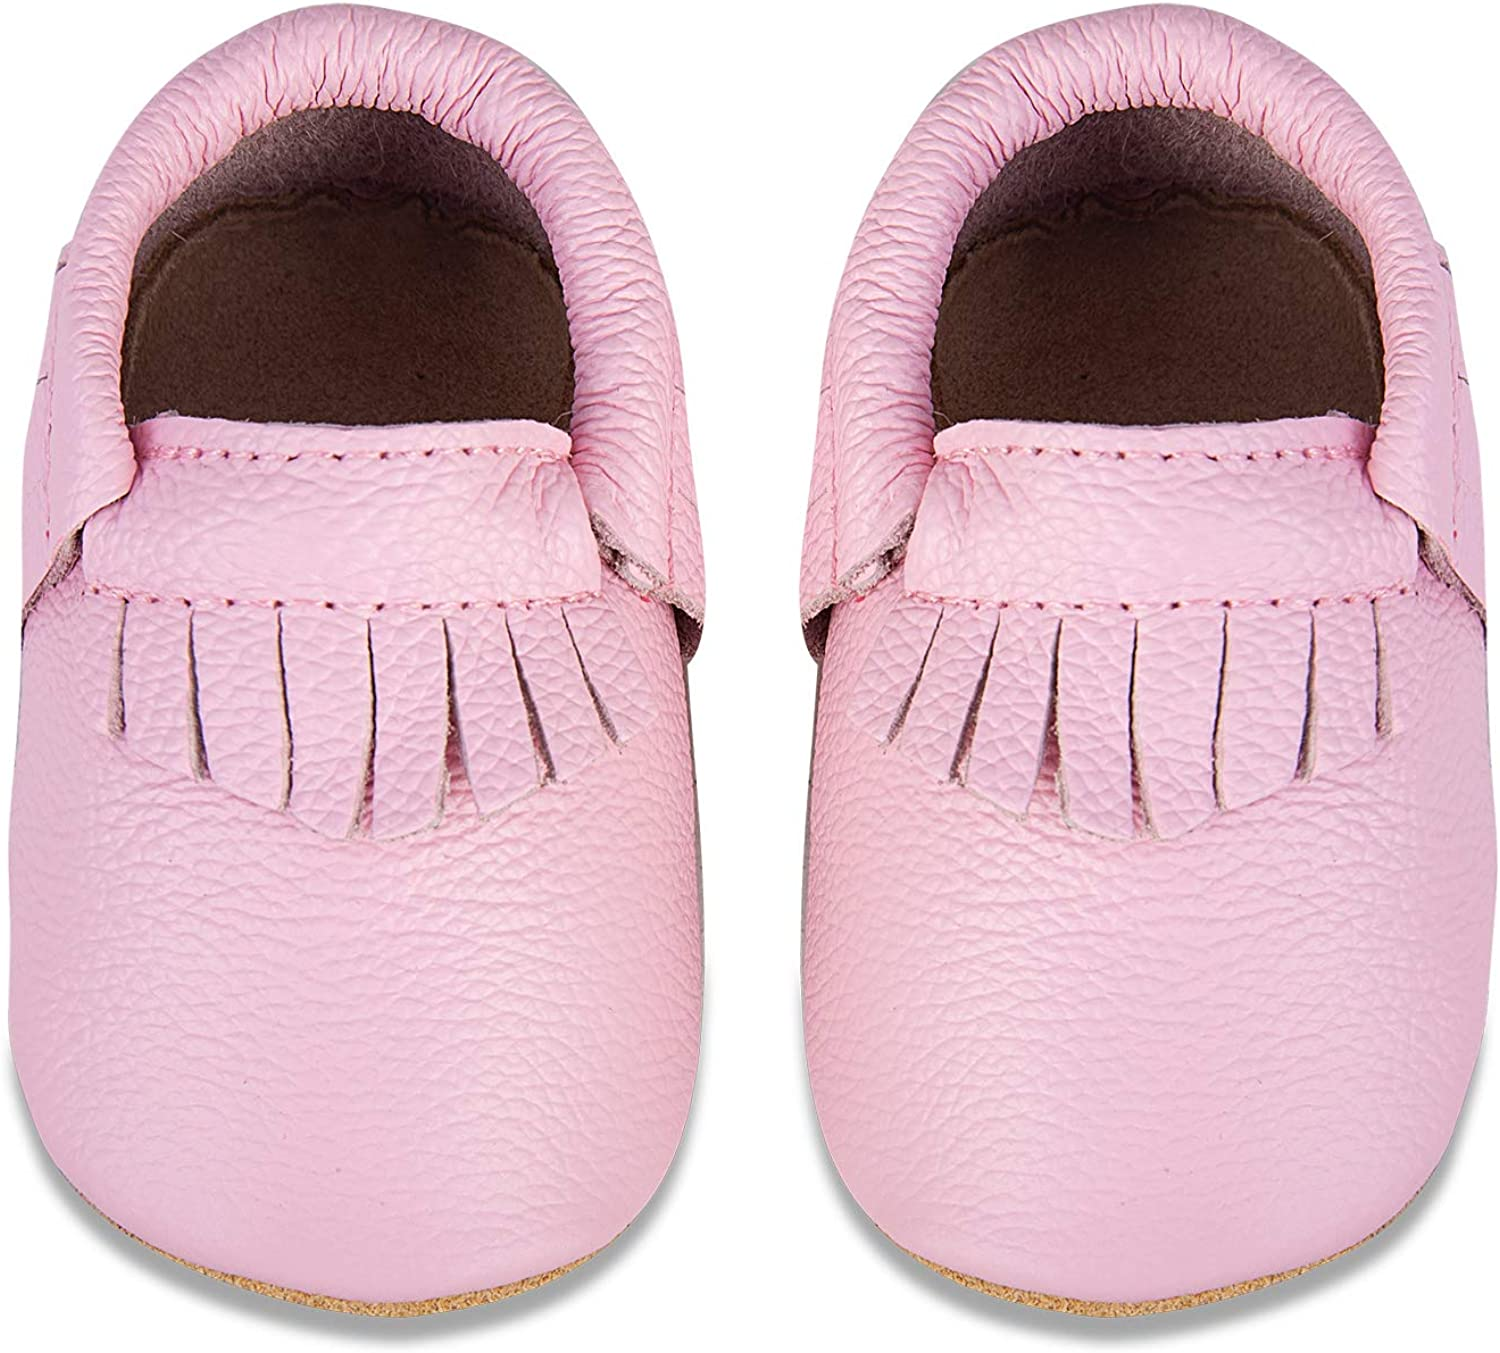 Babies Baby Shoes Genuine Leather with Non-Slip Suede Soles Infant Moccasins for Boy,Girl,Newborns Toddlers